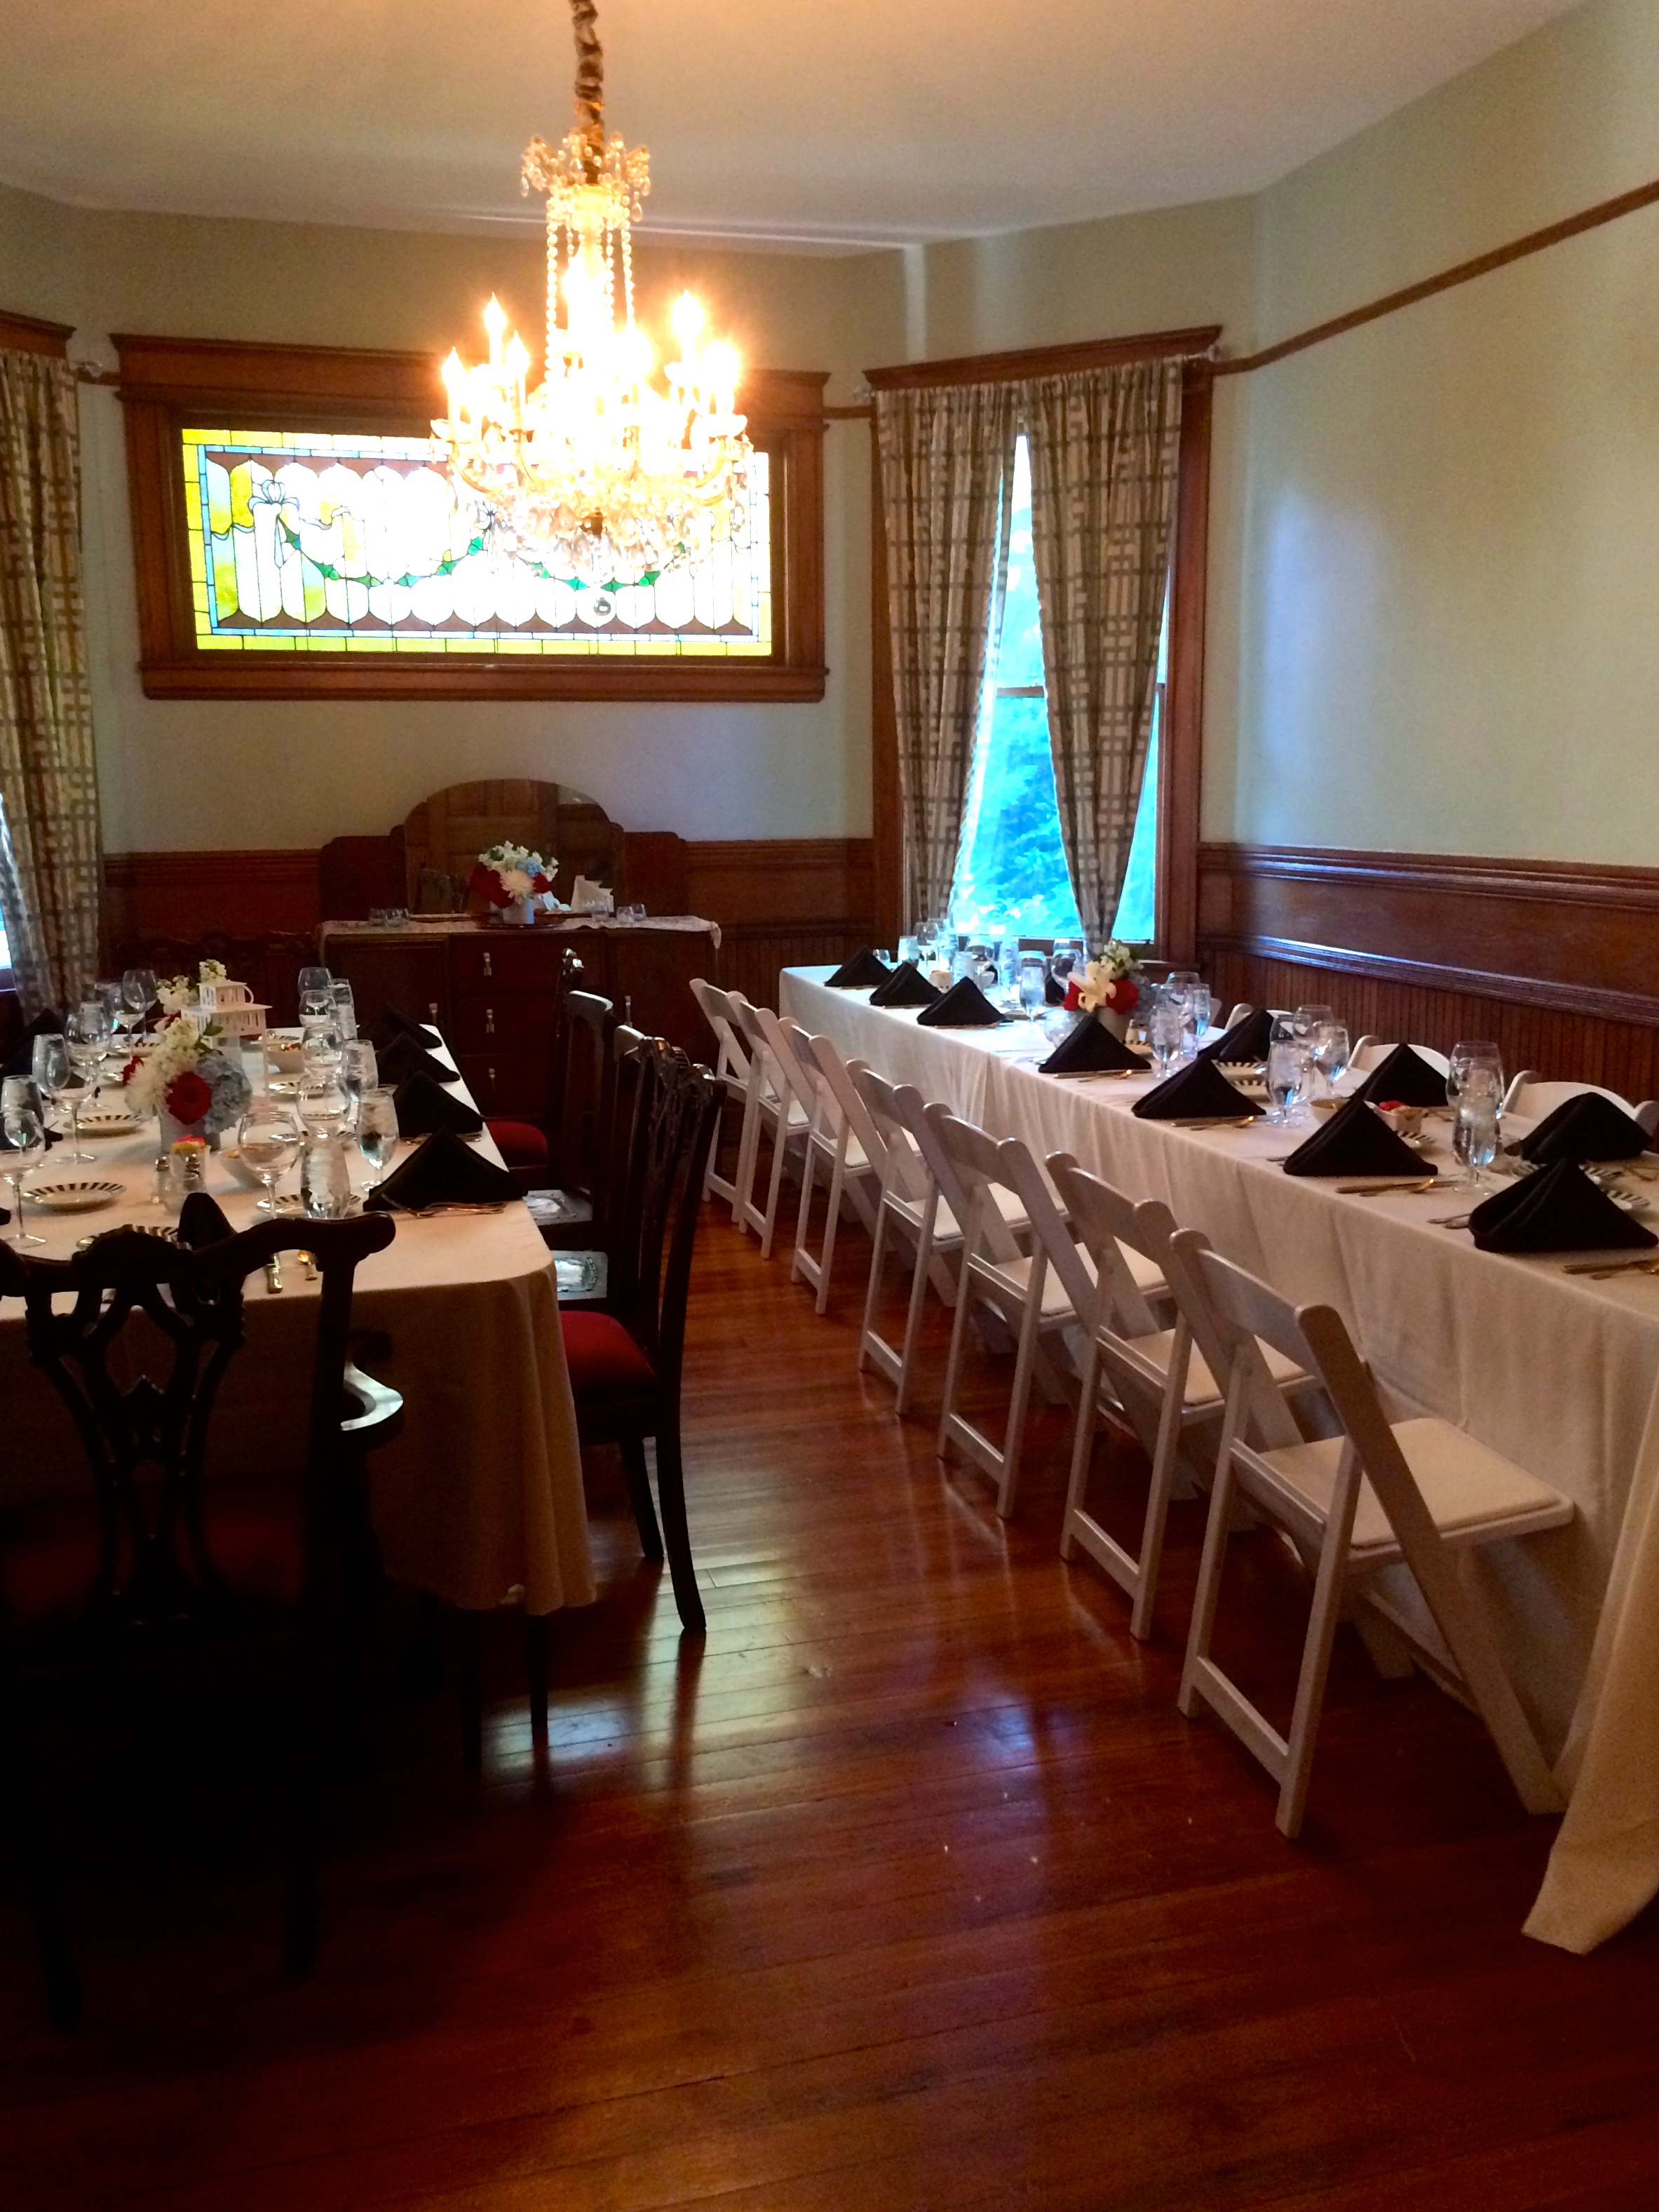 banquet set-up in the dining room